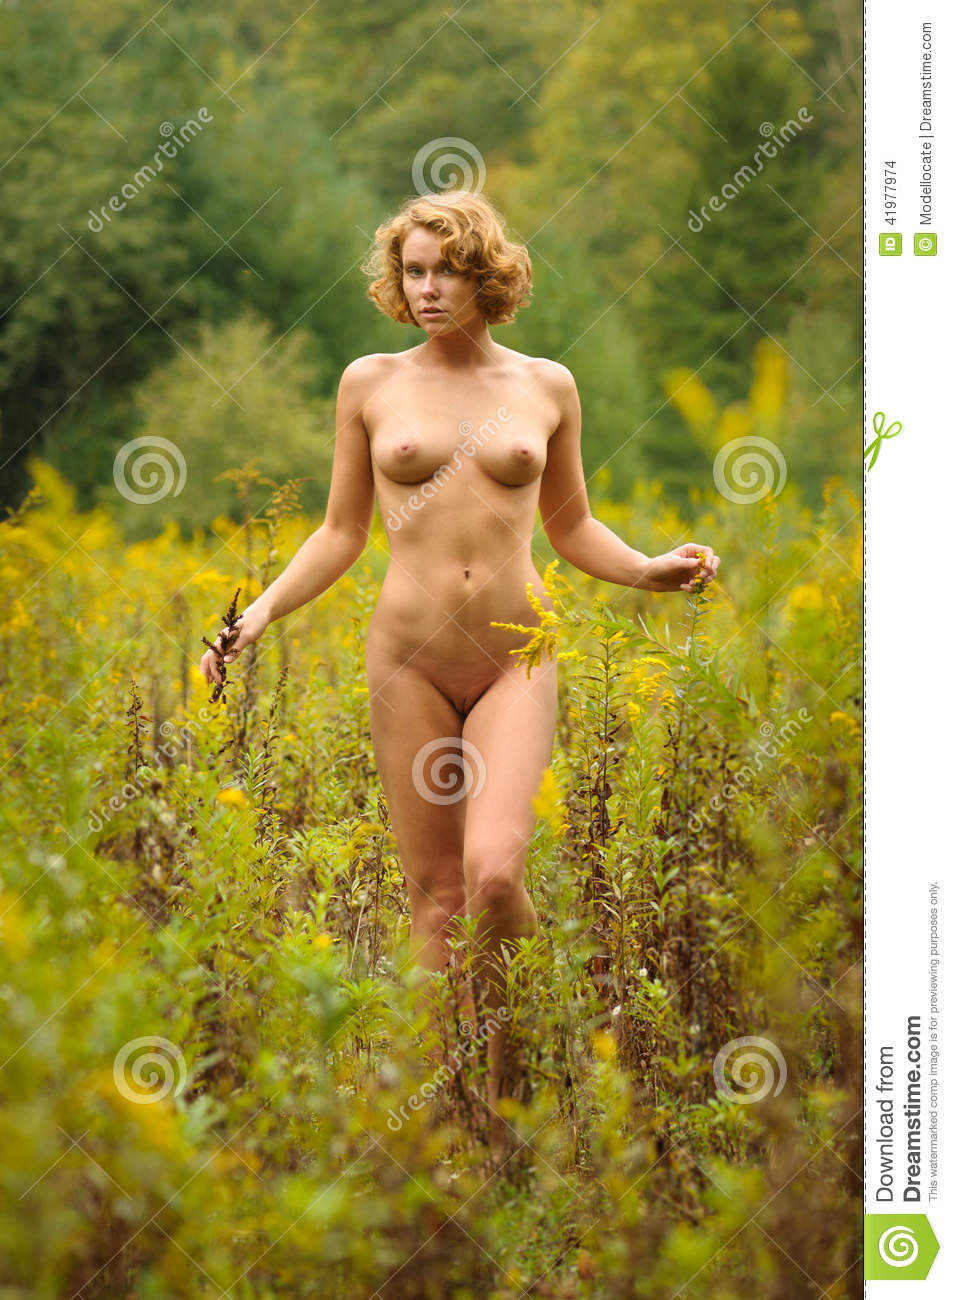 Nude In Field 91